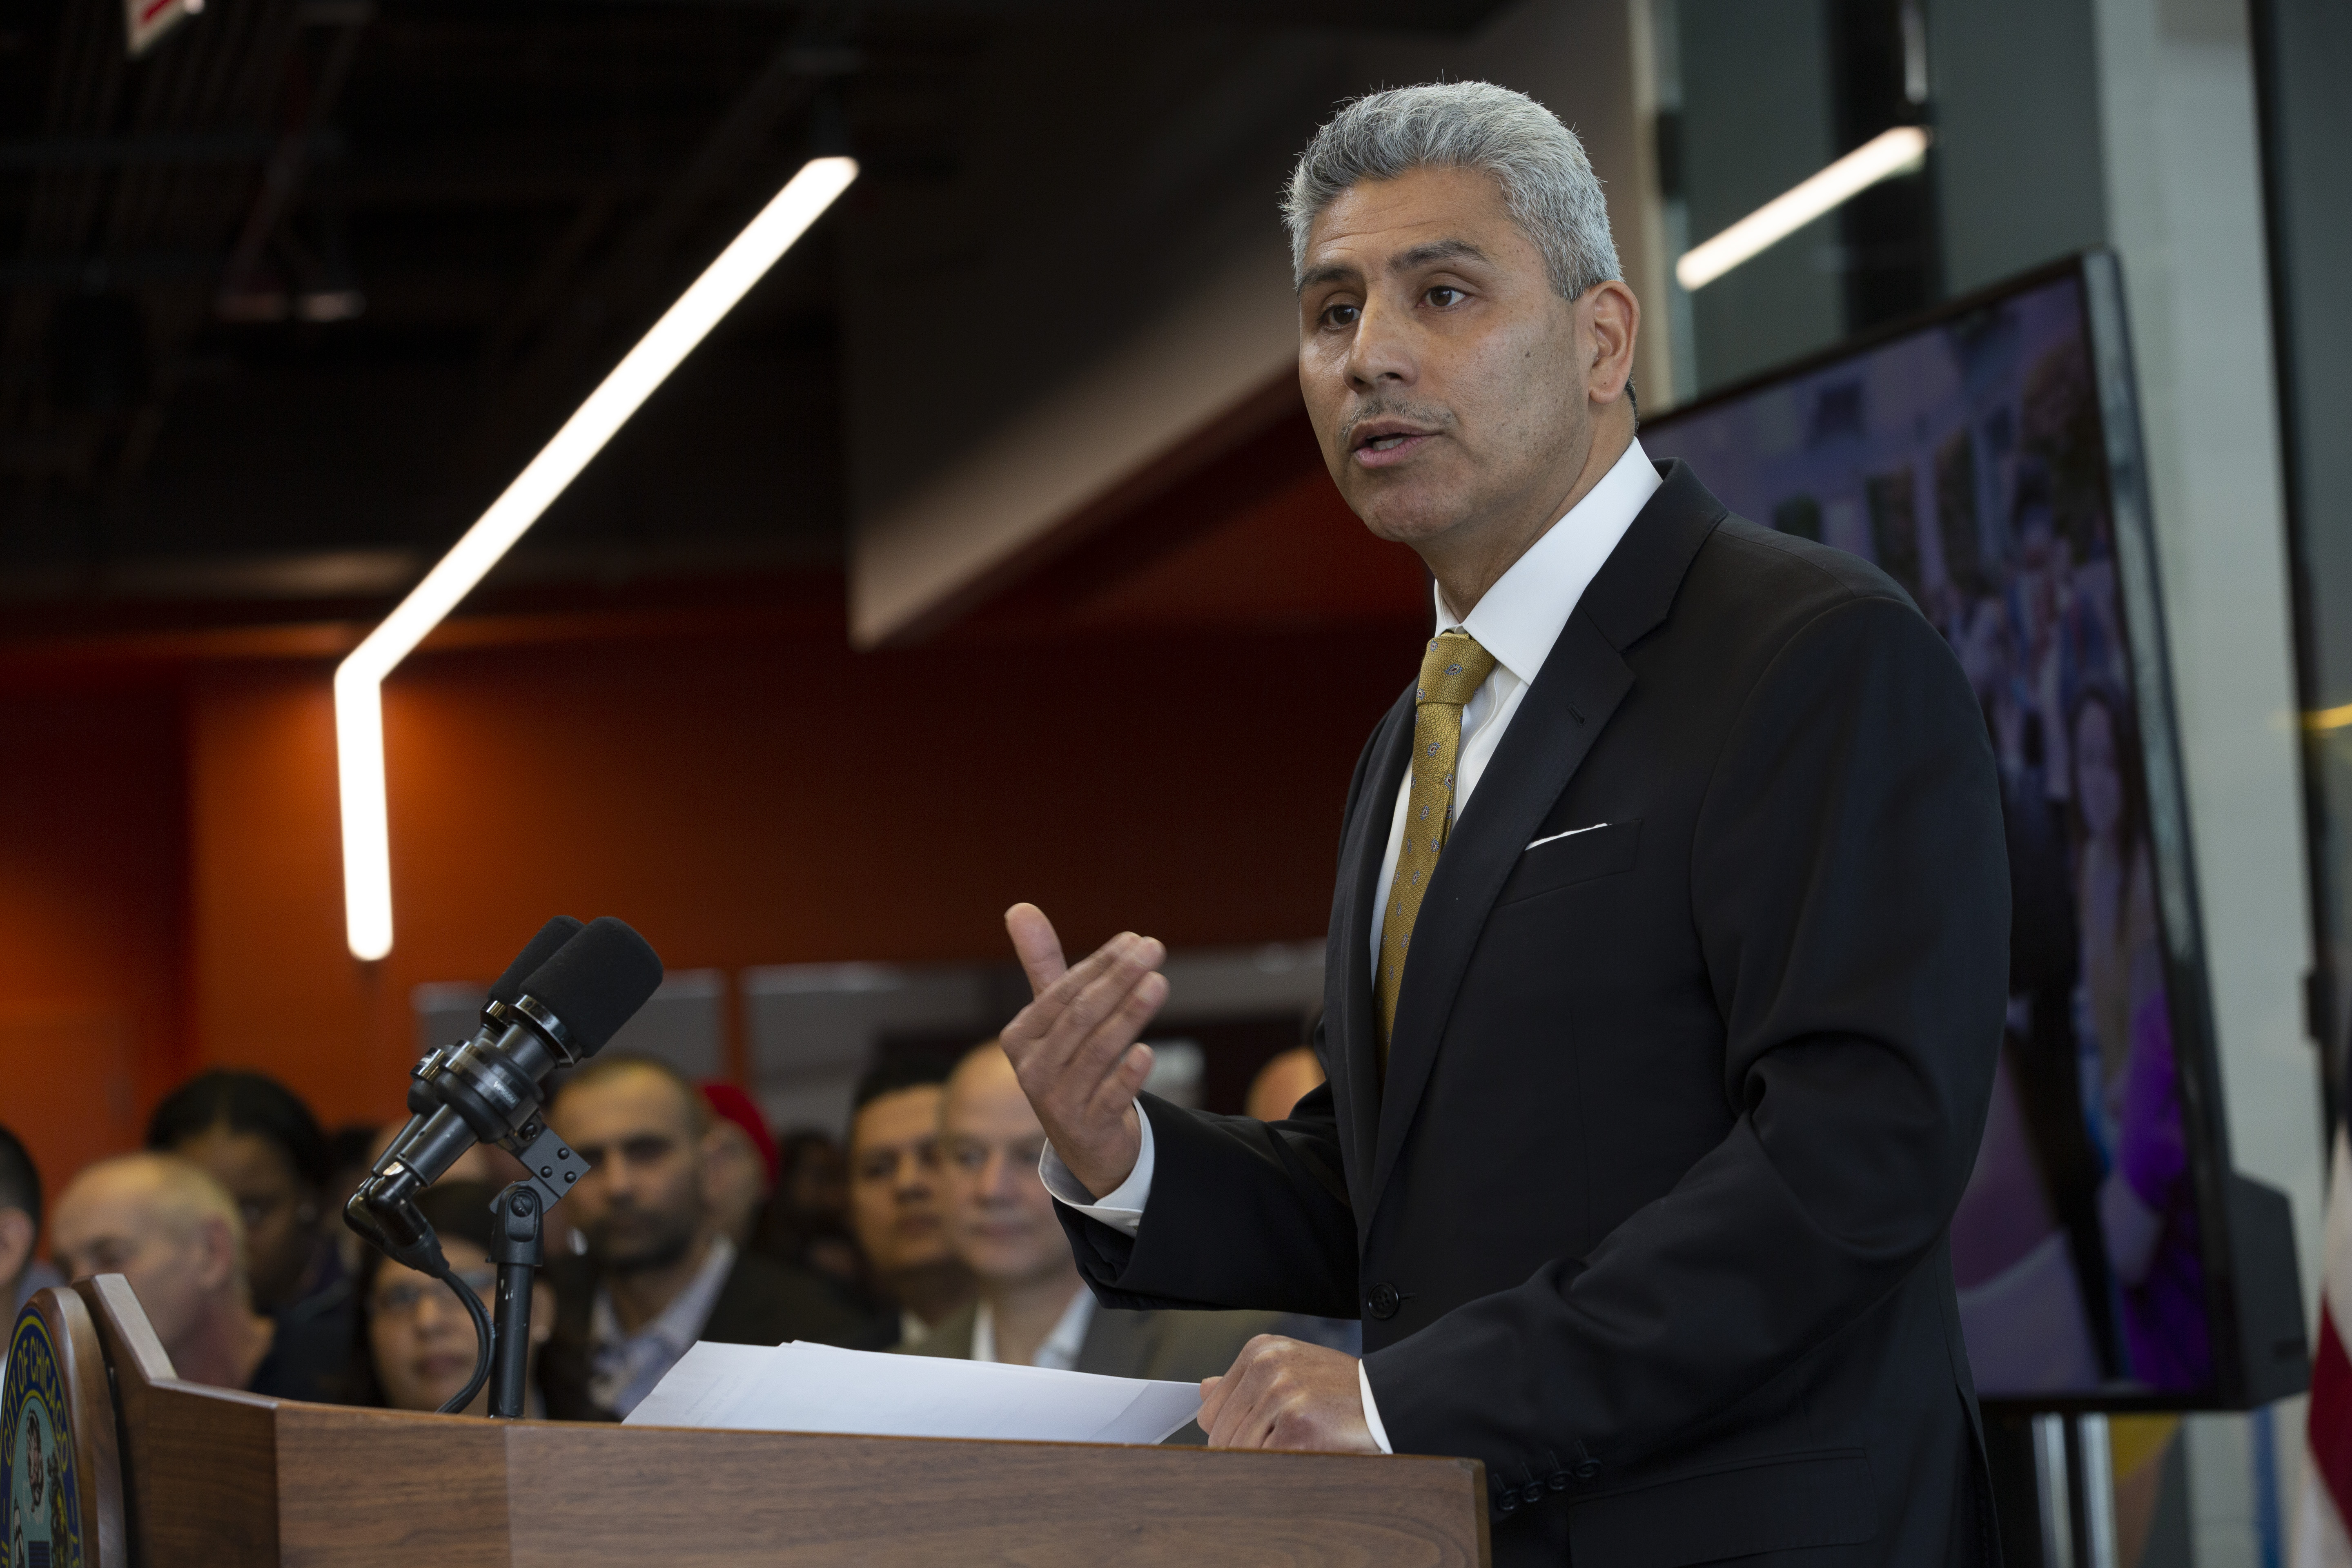 City Colleges of Chicago Chancellor Juan Salgado speaks at the new Manufacturing Technology and Engineering Center at Richard J. Daley College on Jan. 14, 2019. (Manuel Martinez/WBEZ)